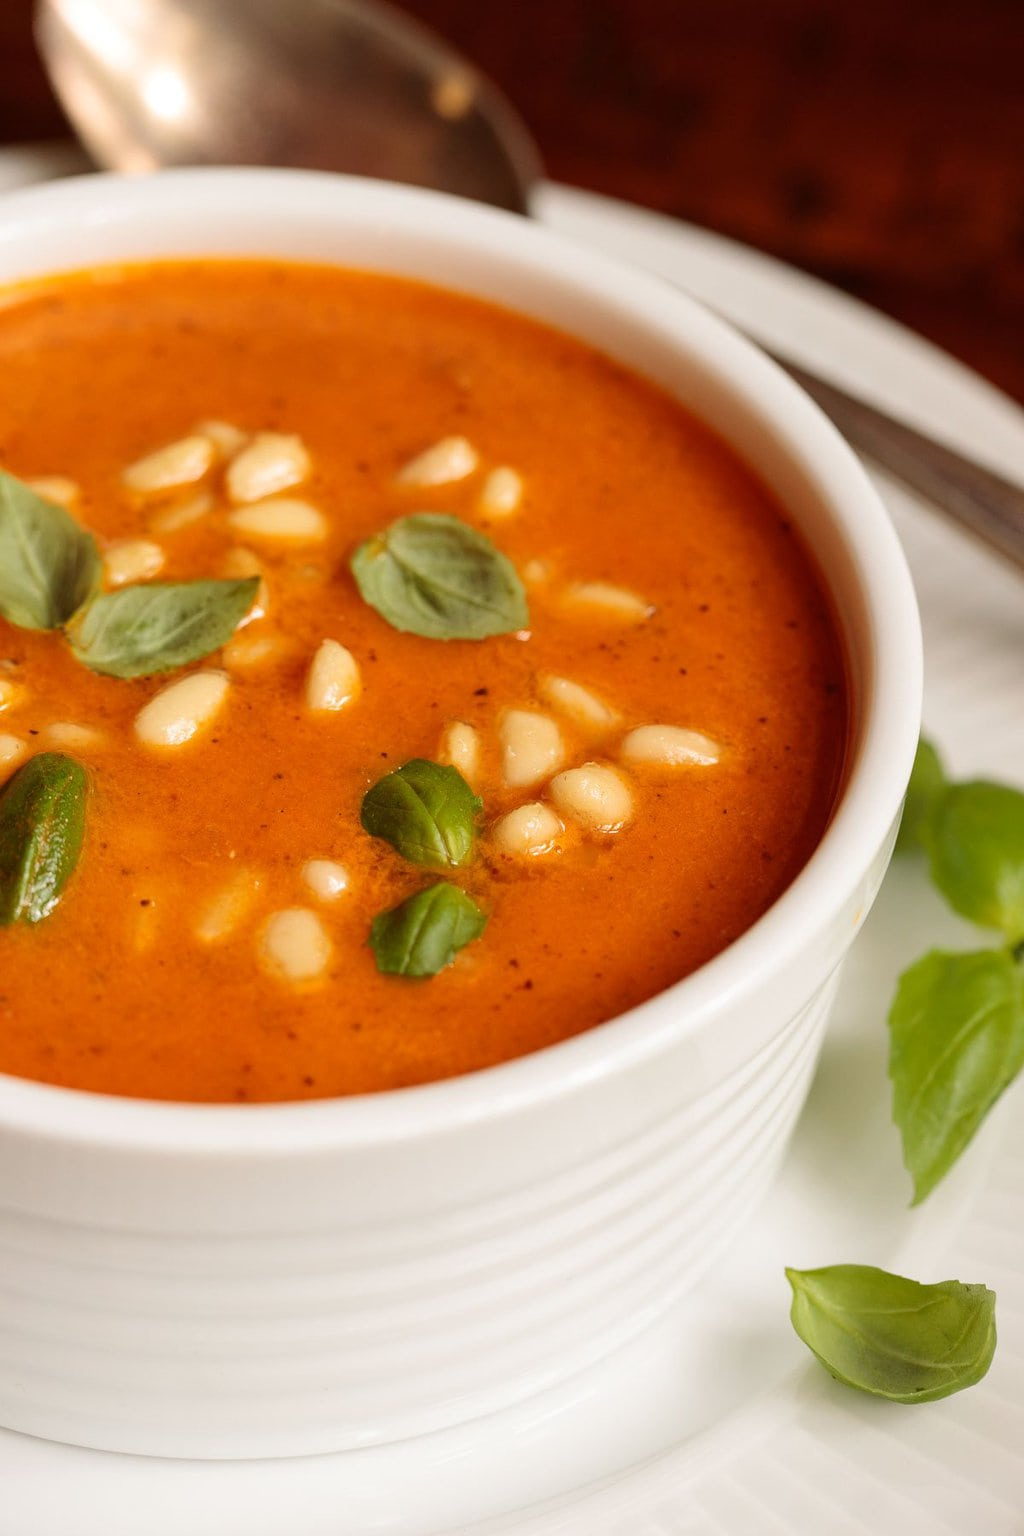 Photo of a white porcelain bowl filled with Italian Sun Dried Tomato Soup garnished with fresh basil leaves.